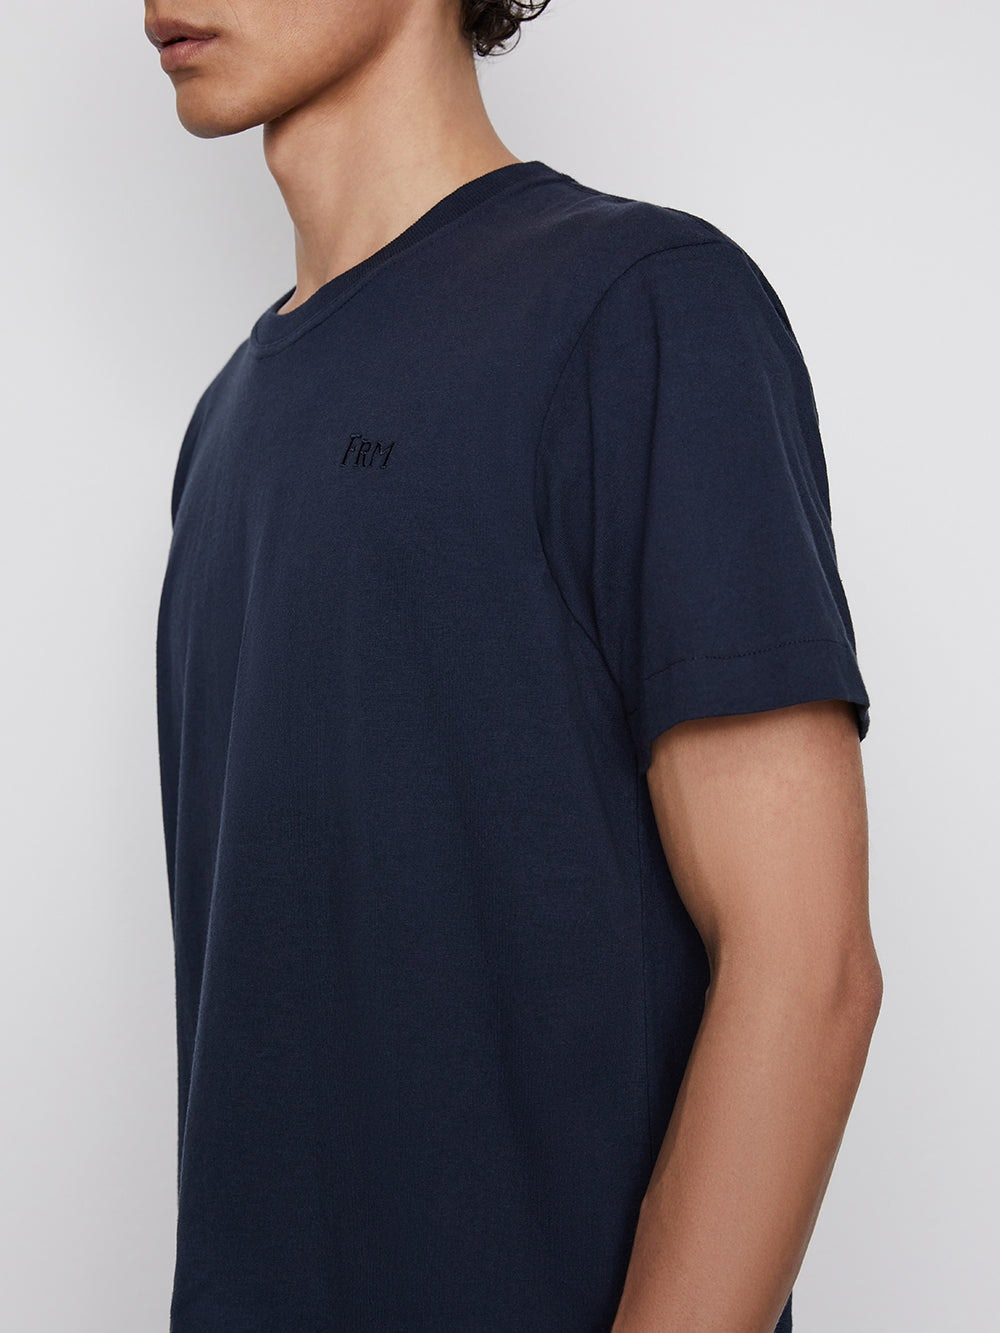 shirt side view